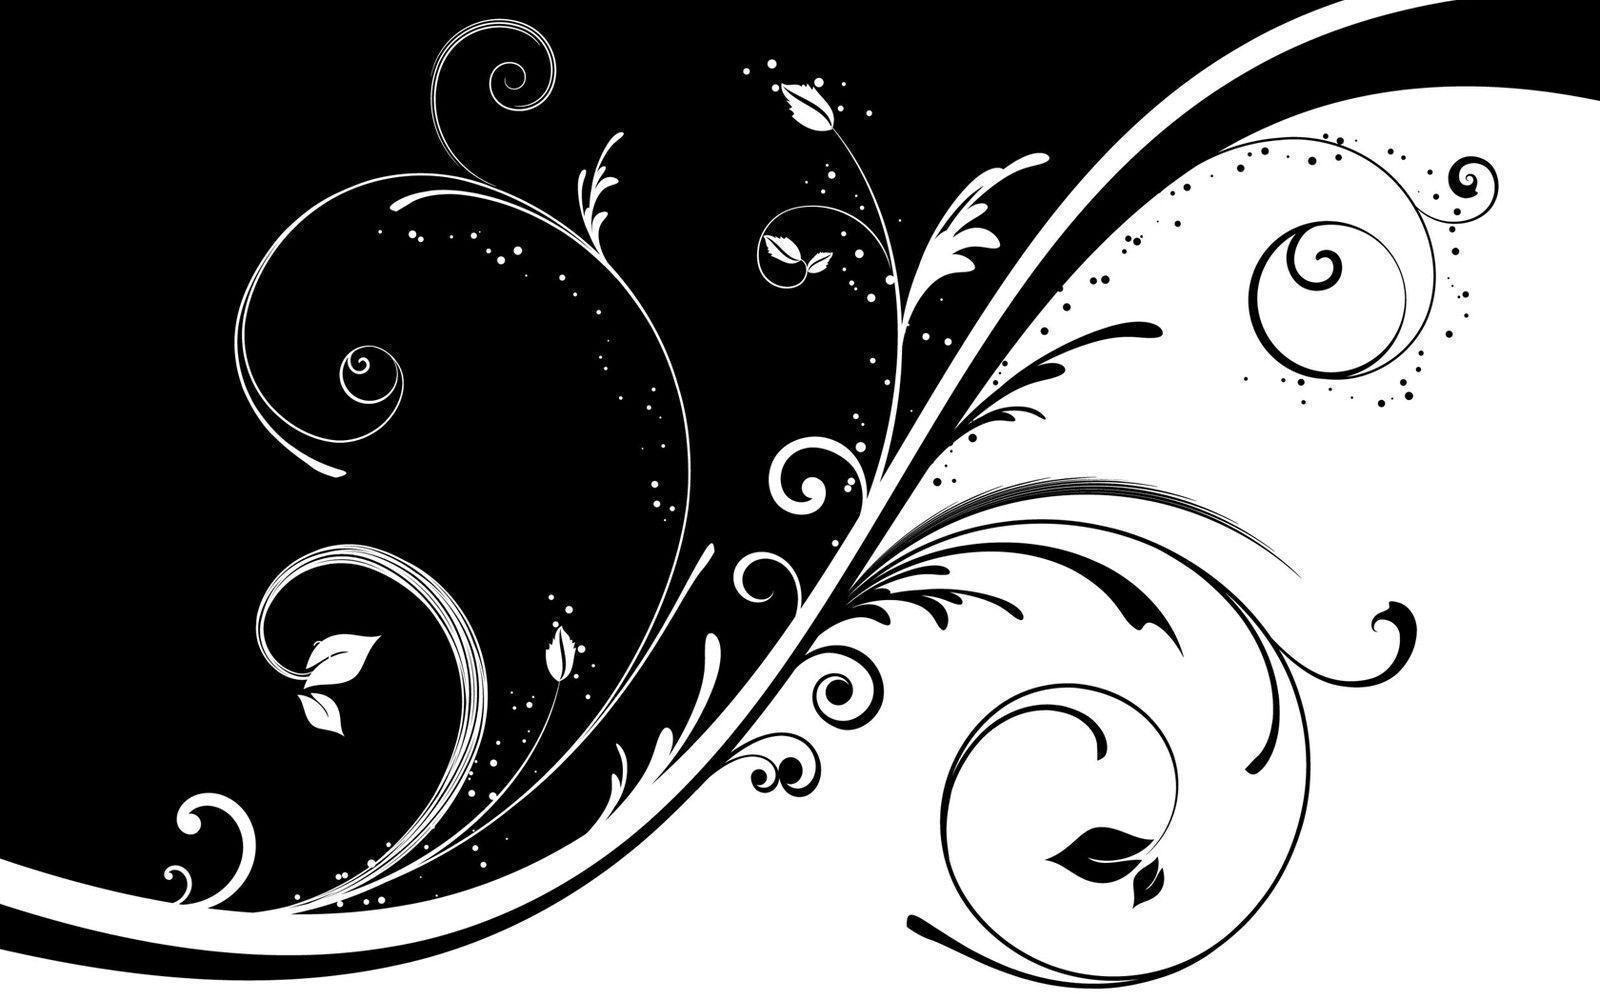 Abstract Art Wallpapers Black And White Backgro Wallpapers